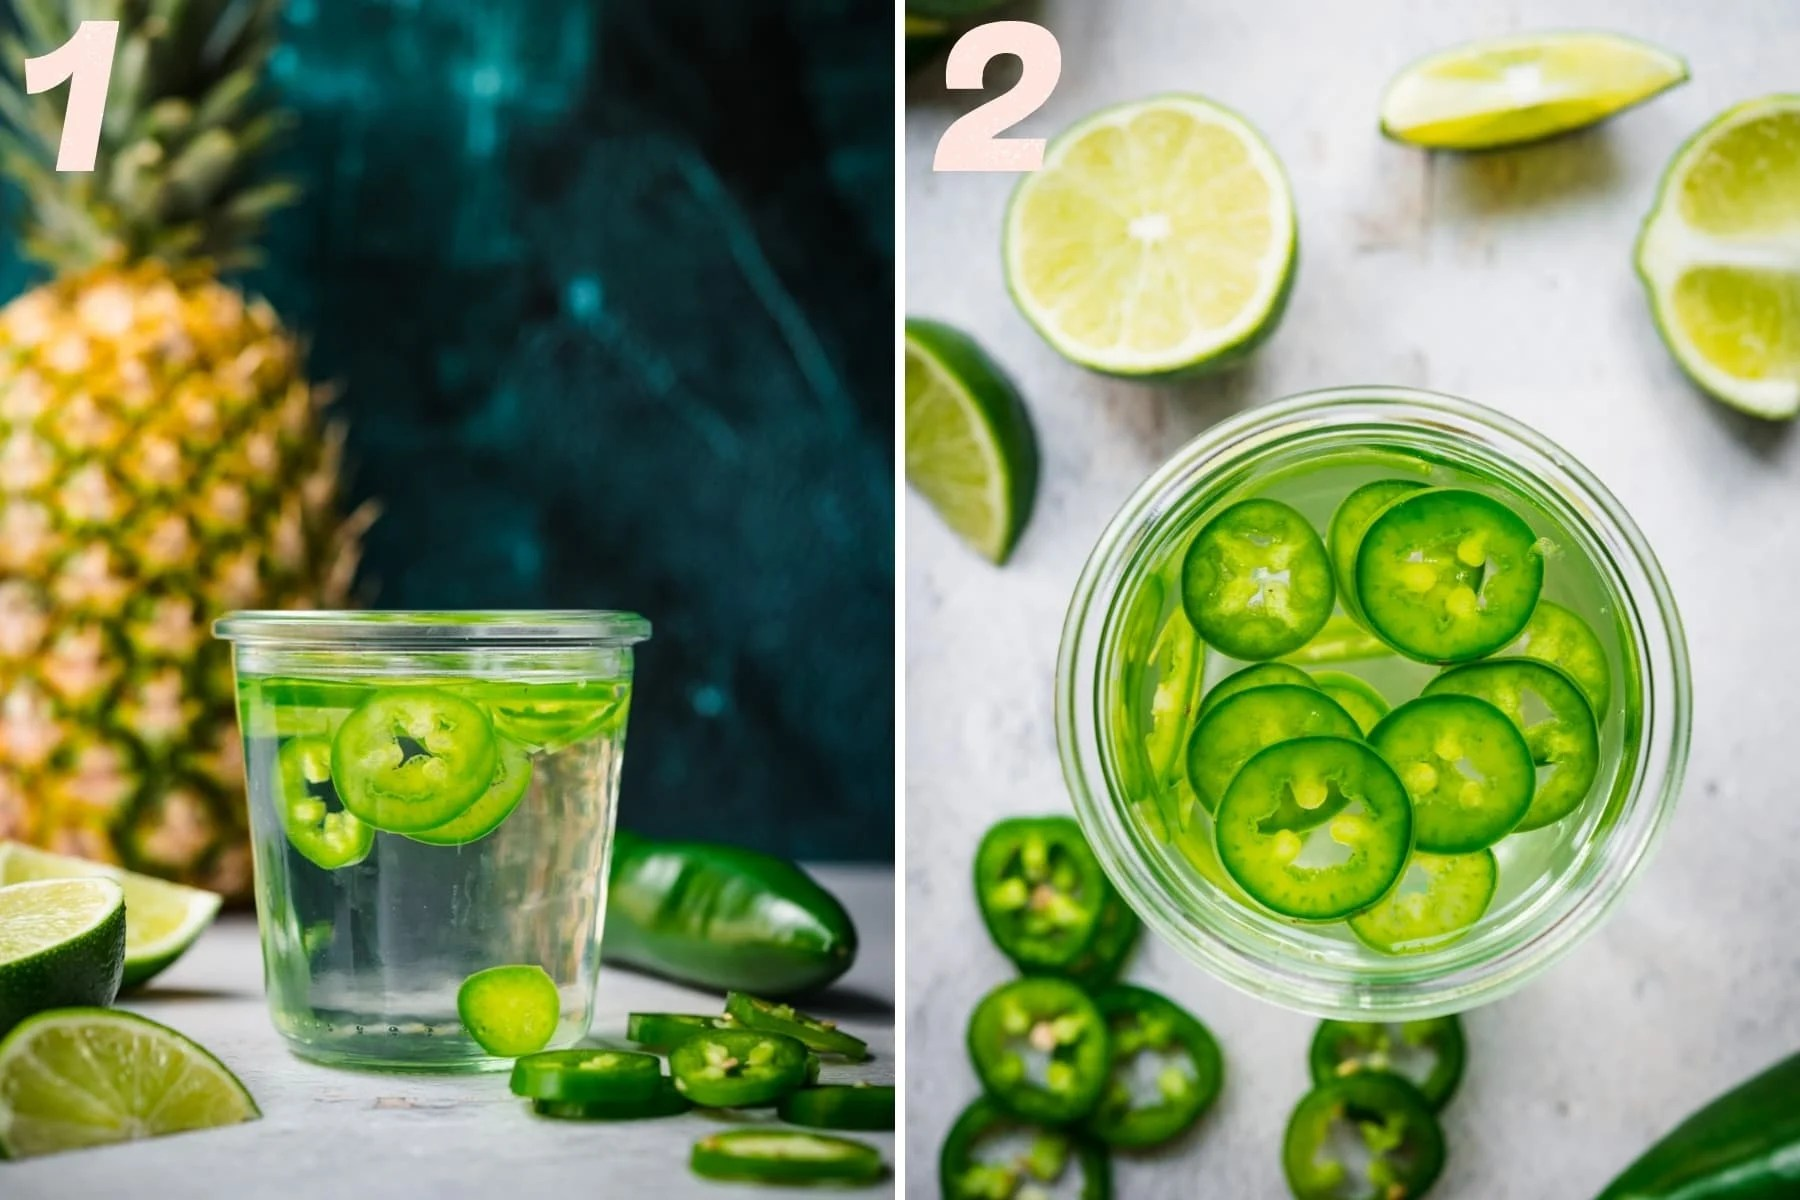 side view and overhead view of jalapeño infused tequila in a small jar.